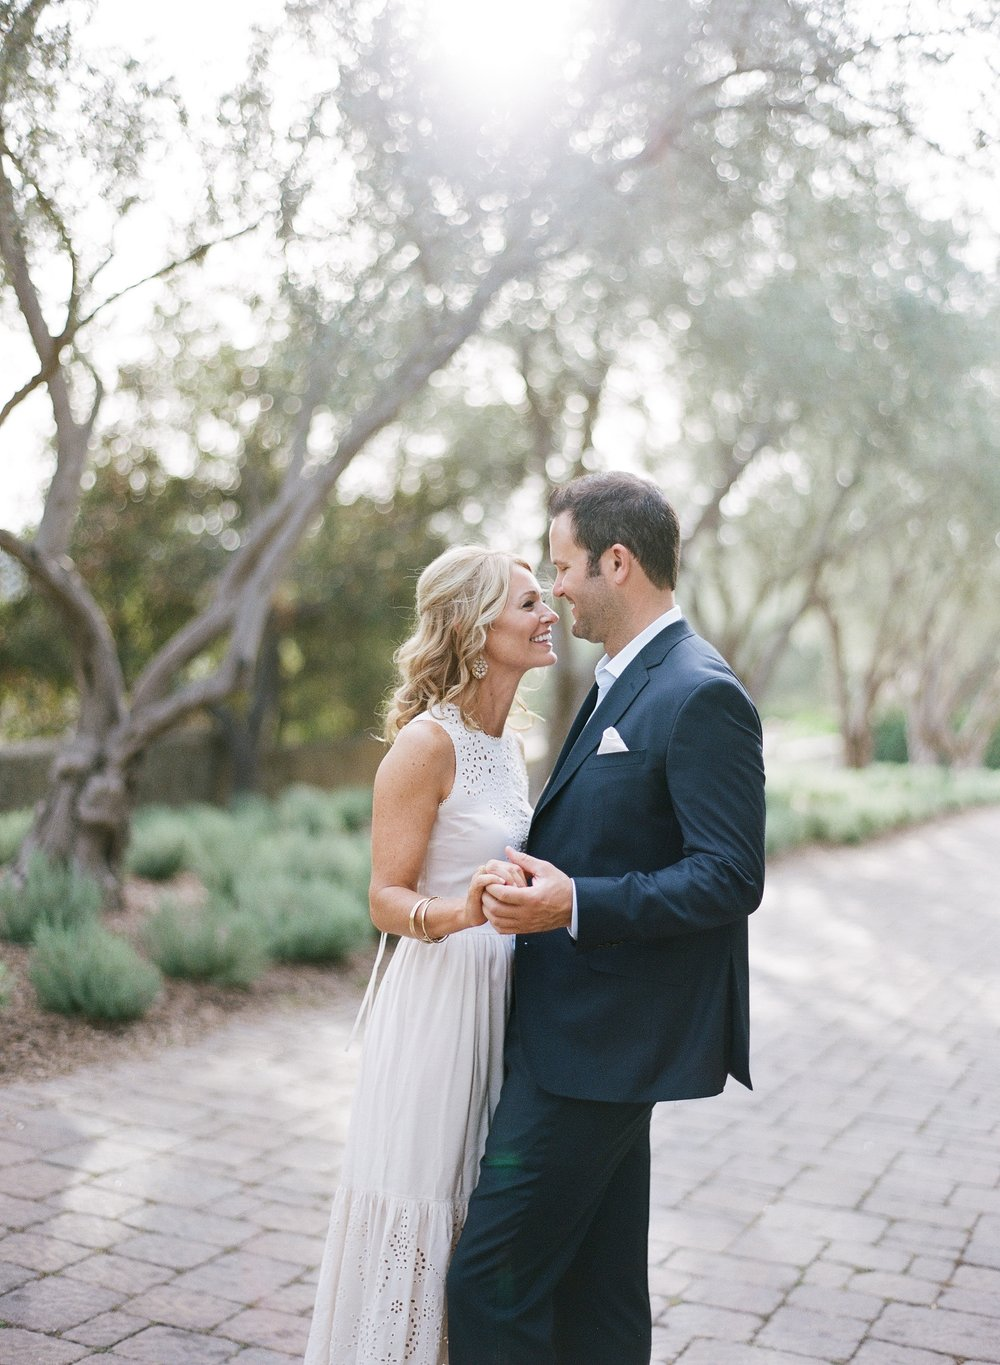 www.santabarbarawedding.com | Kristen Beinke | San Ysidro Ranch | Engagement Session